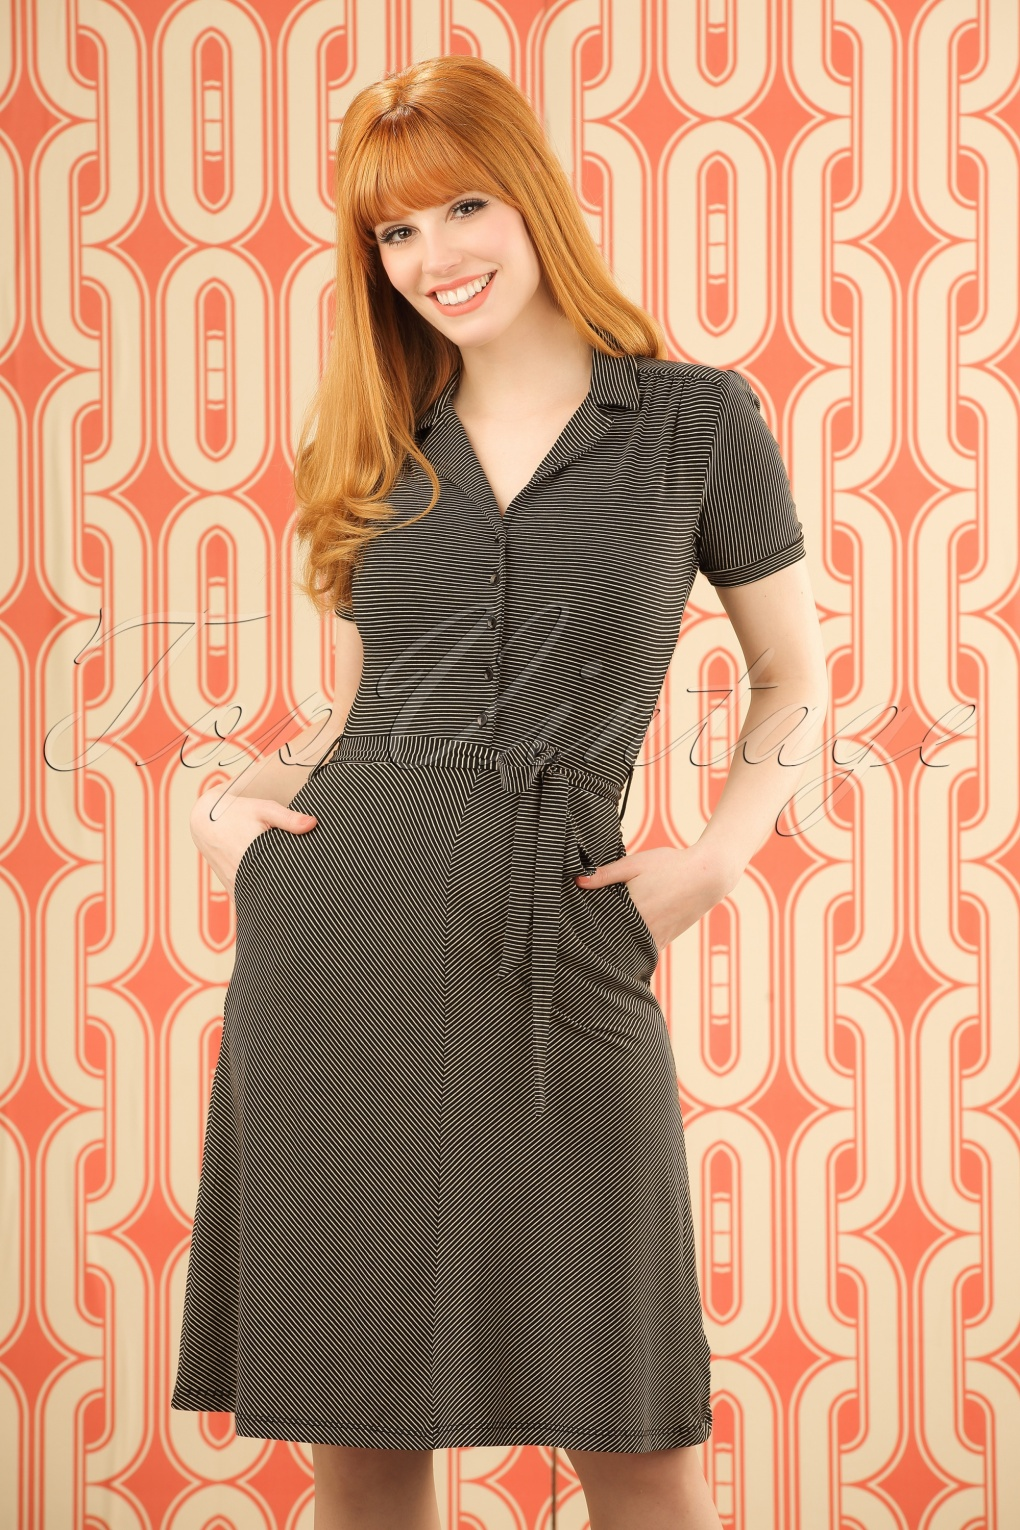 1960s Style Dresses- Retro Inspired Fashion 60s Bibi Striped Dress in Black and Beige £69.93 AT vintagedancer.com